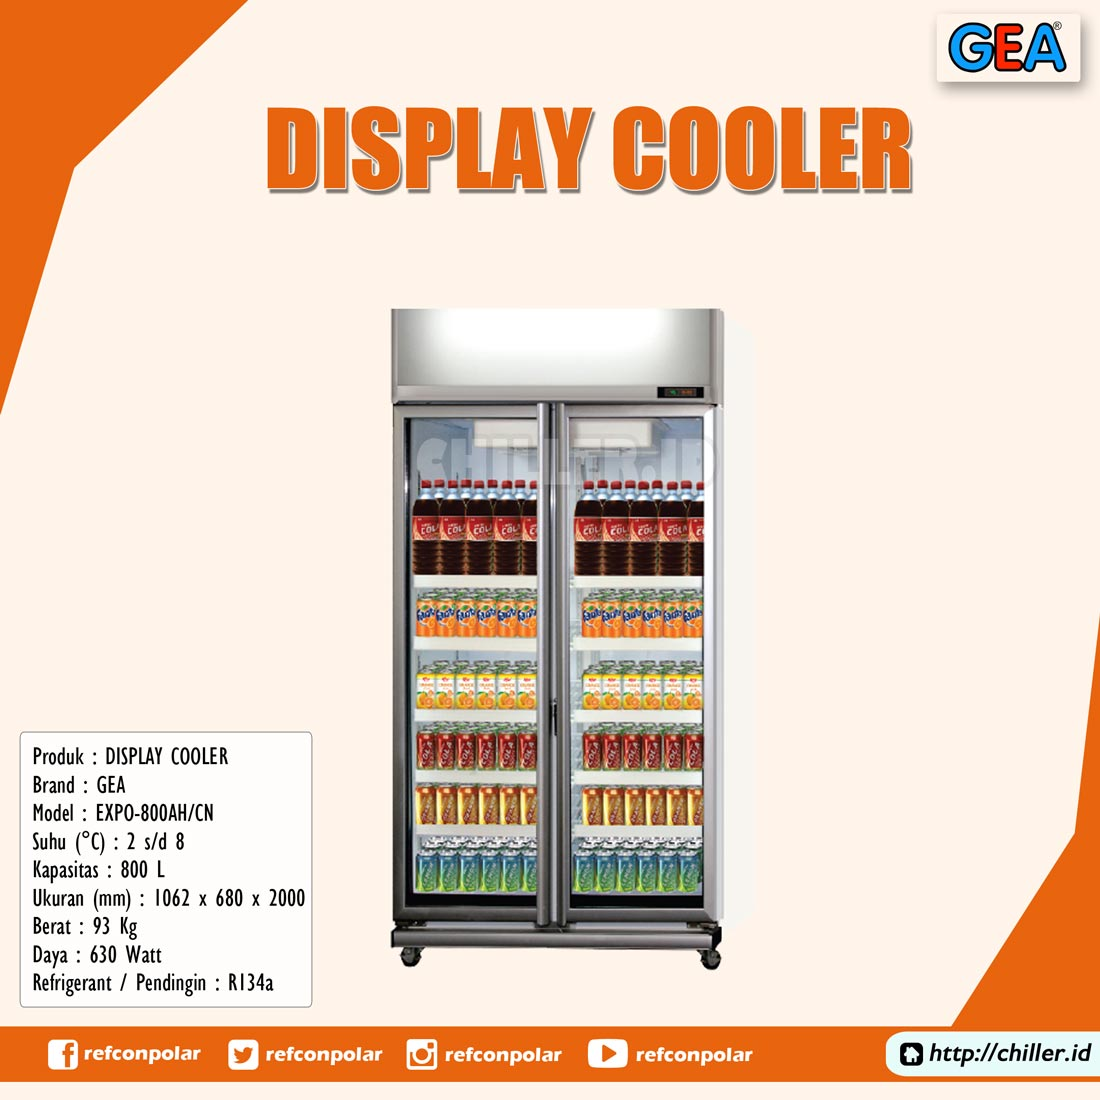 EXPO-800AH/CN GEA Display Cooler